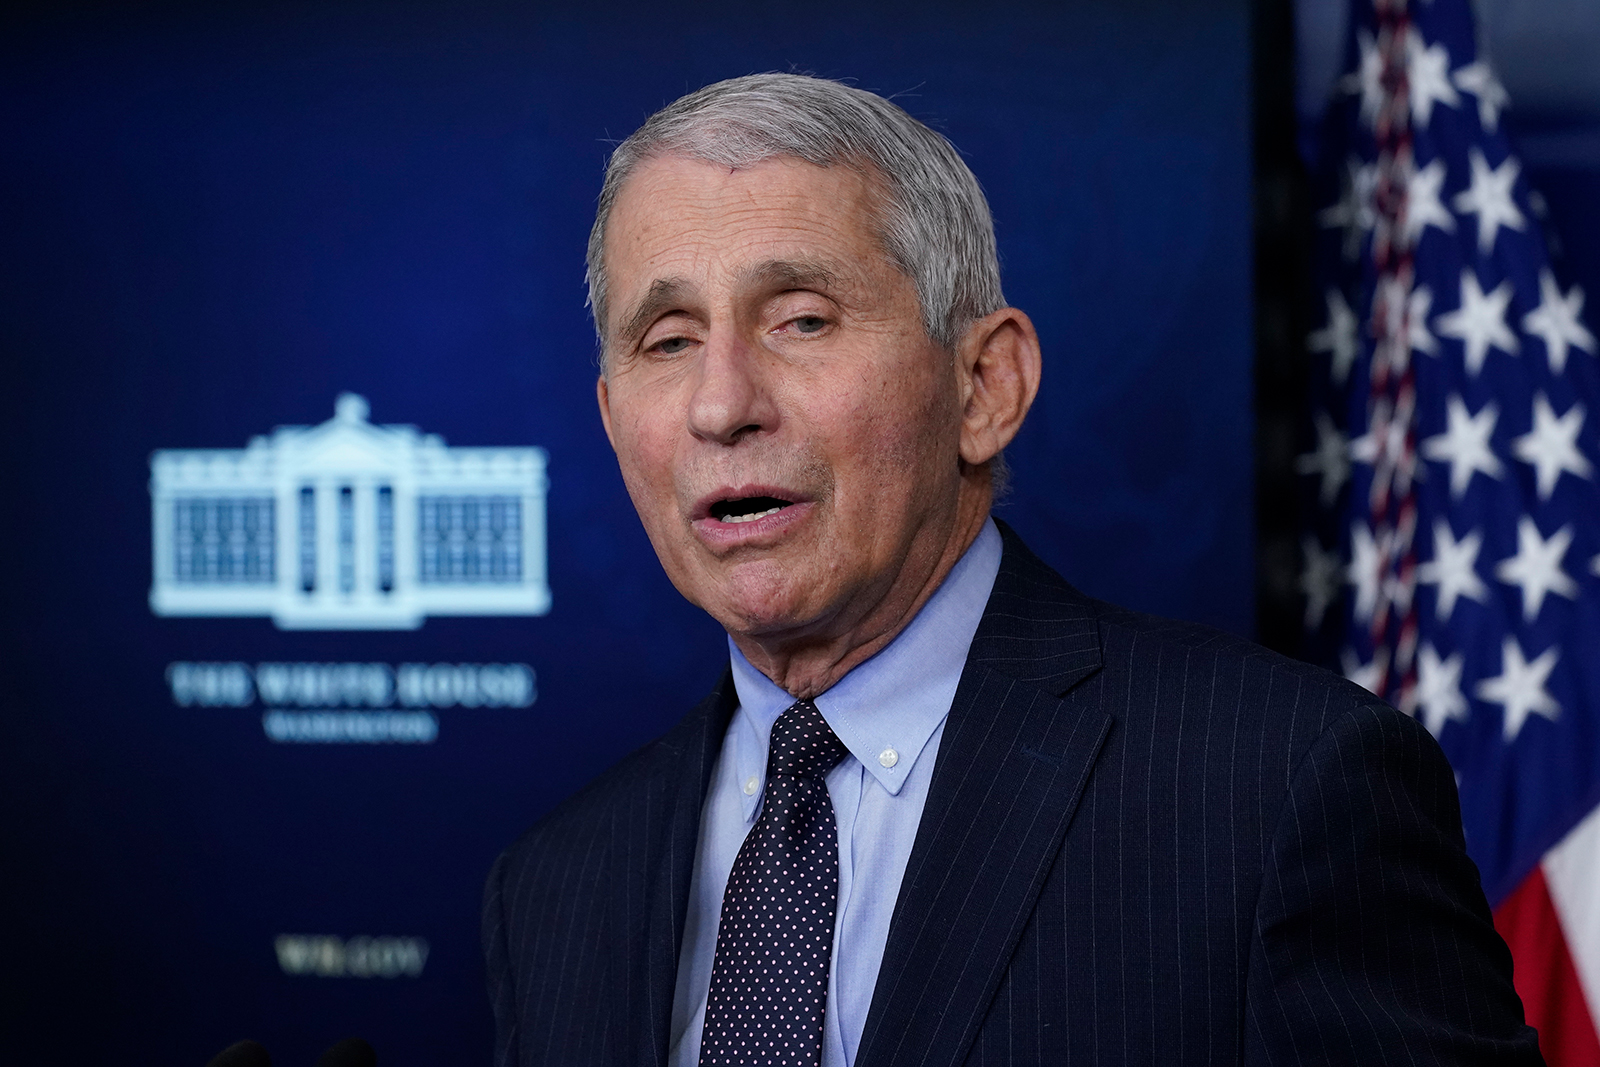 Dr. Anthony Fauci, director of the National Institute of Allergy and Infectious Diseases, speaks with reporters at the White House in Washington, DC, on January 21.